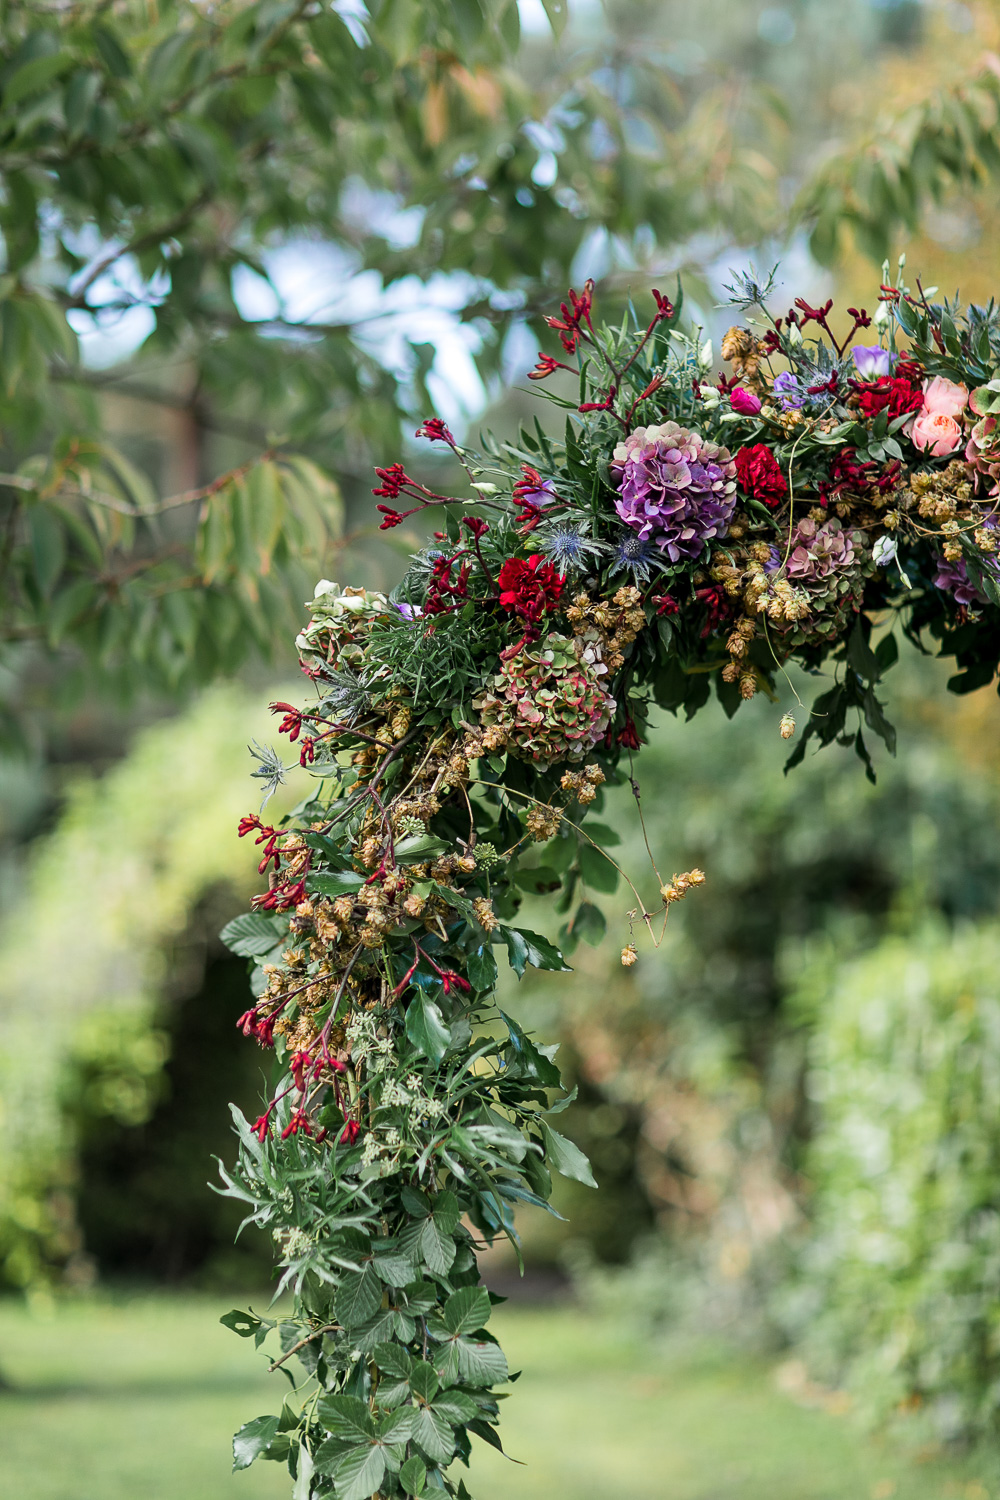 Floral wedding arch details for an outside wedding ceremony